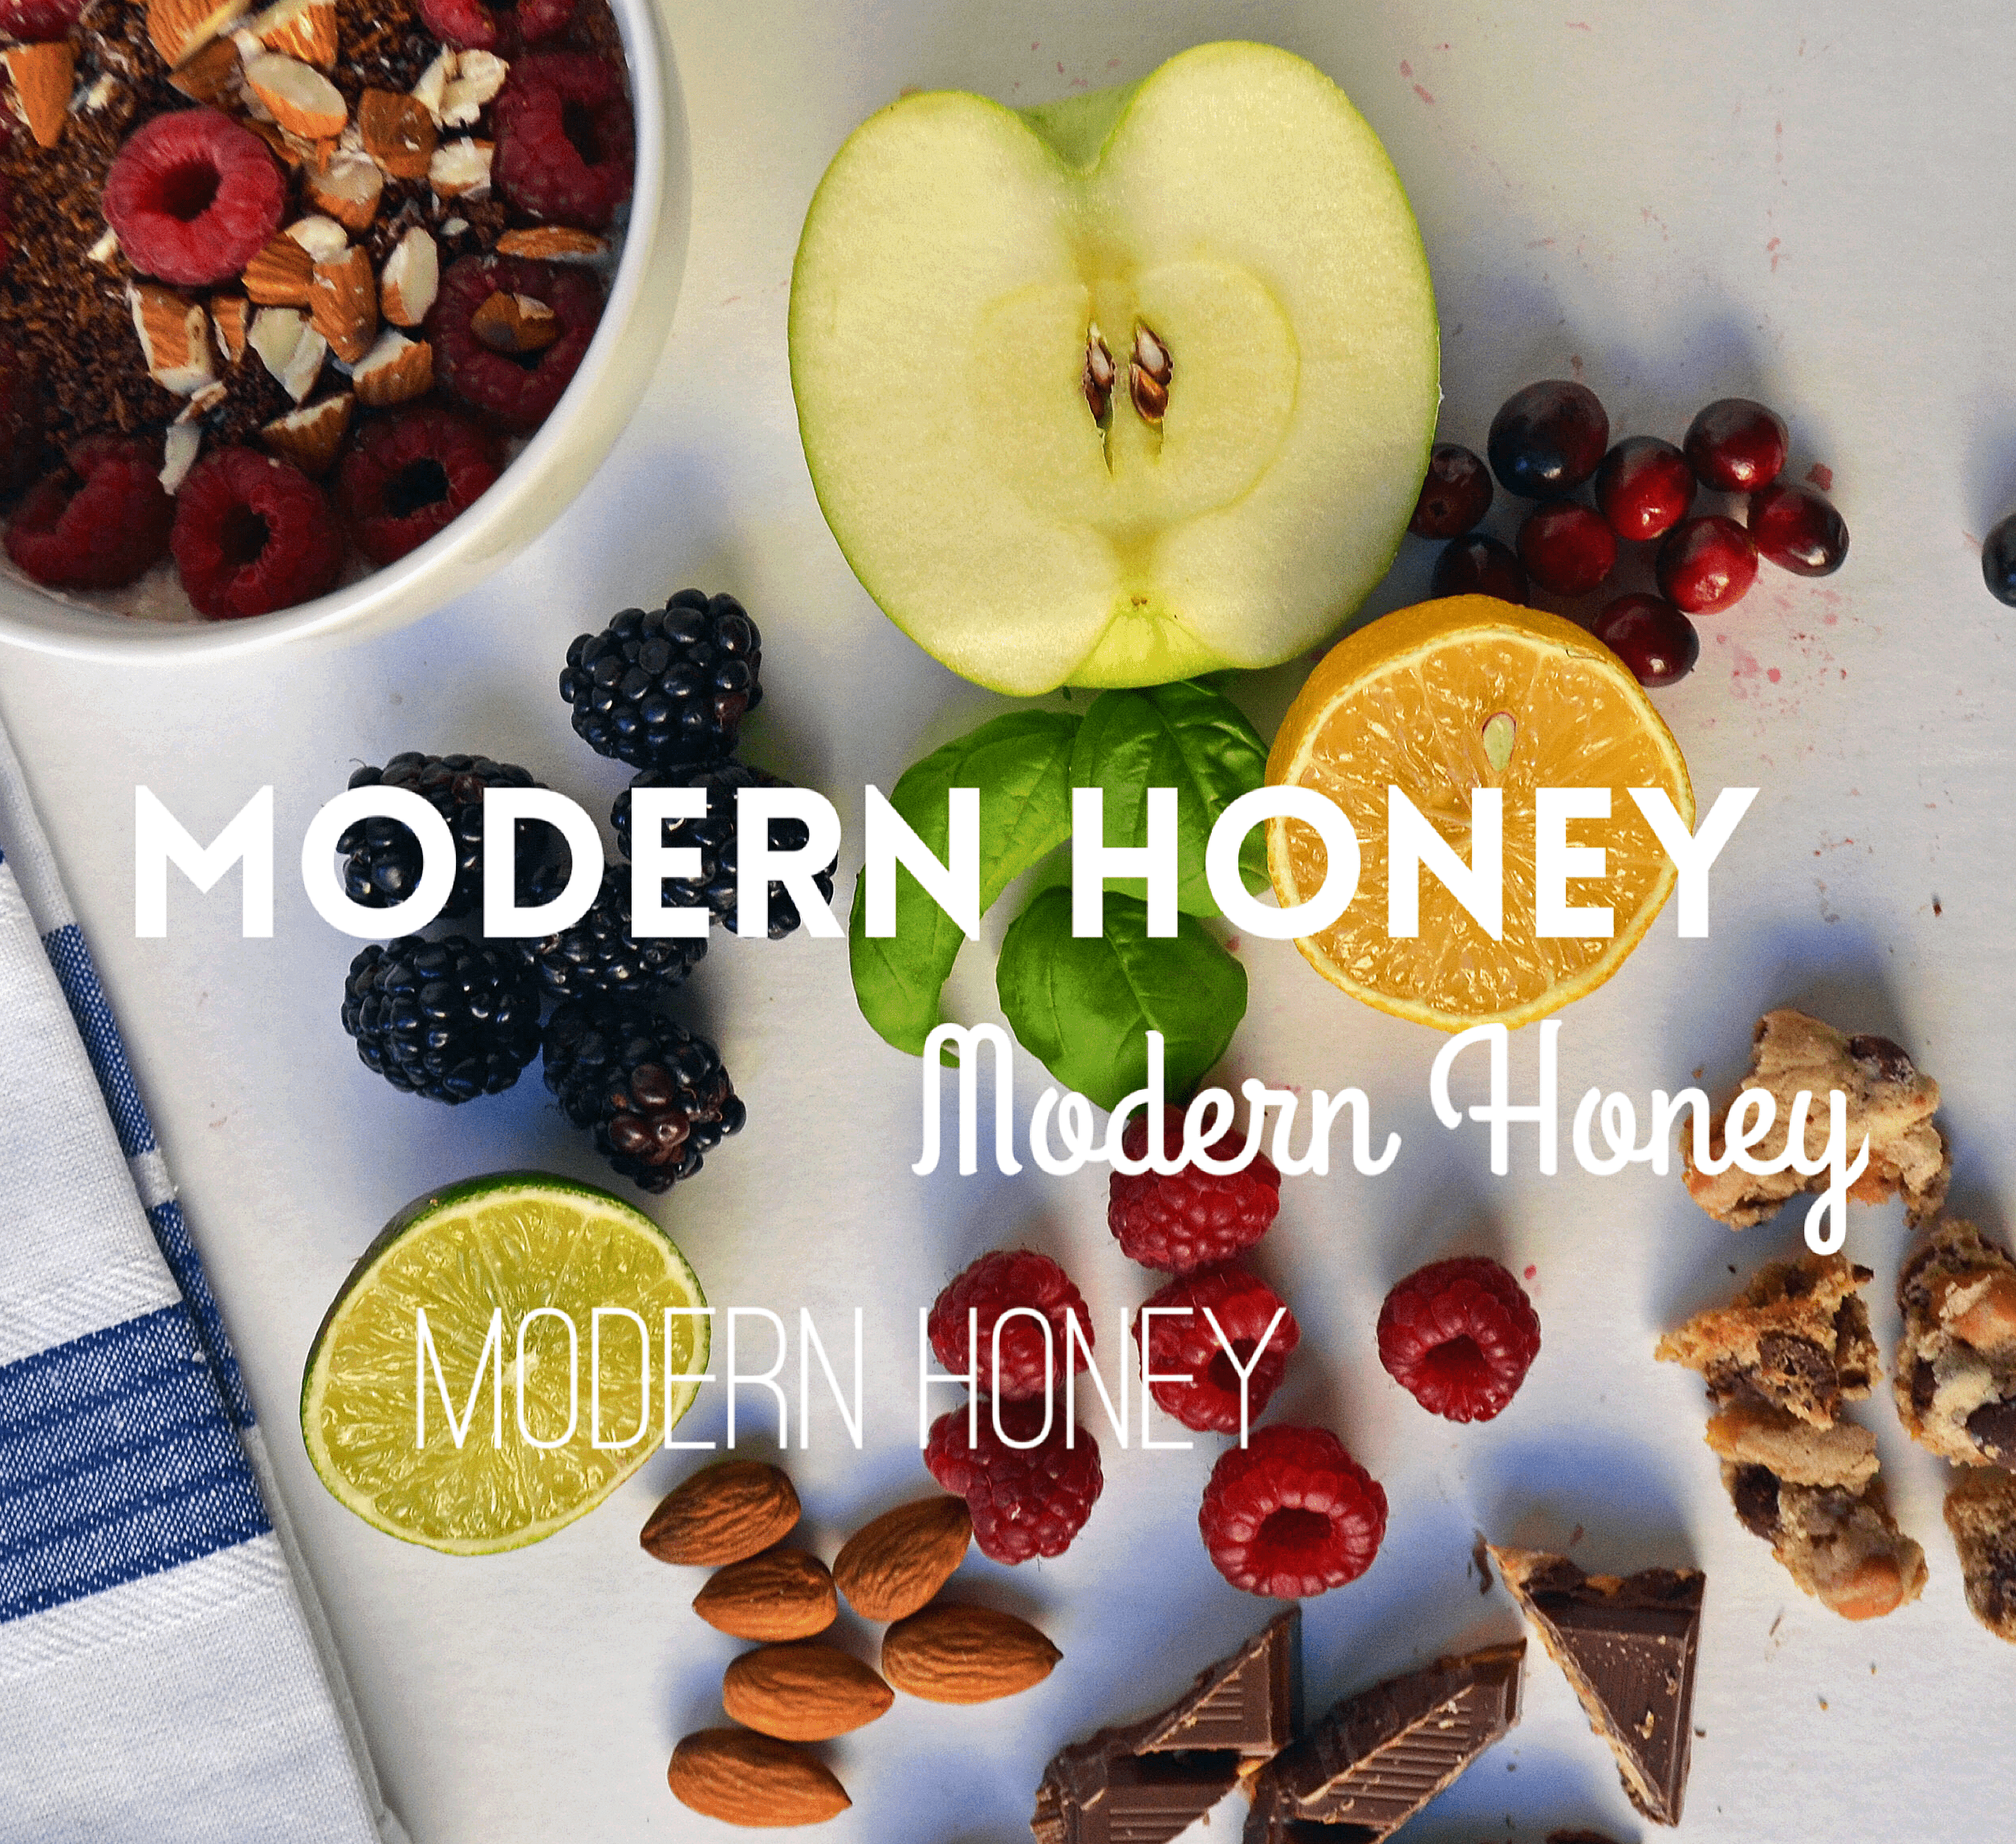 Modern Honey, Food Blog by Melissa Stadler